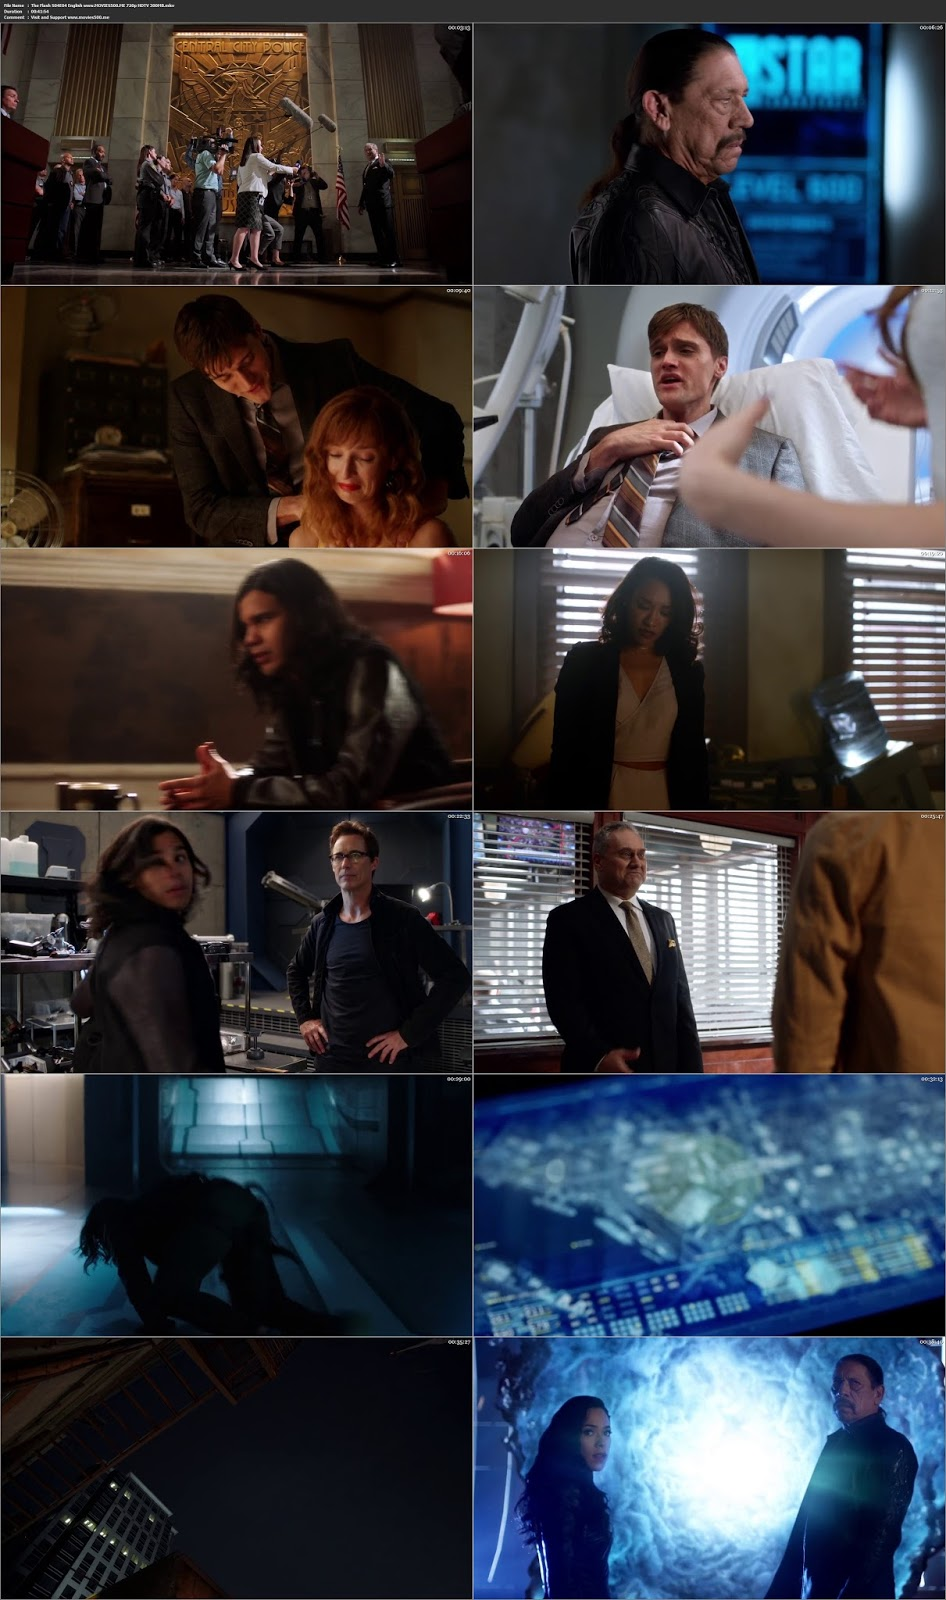 The Flash S04E04 English 325MB HDTVRip 720 at vulcandelux.today